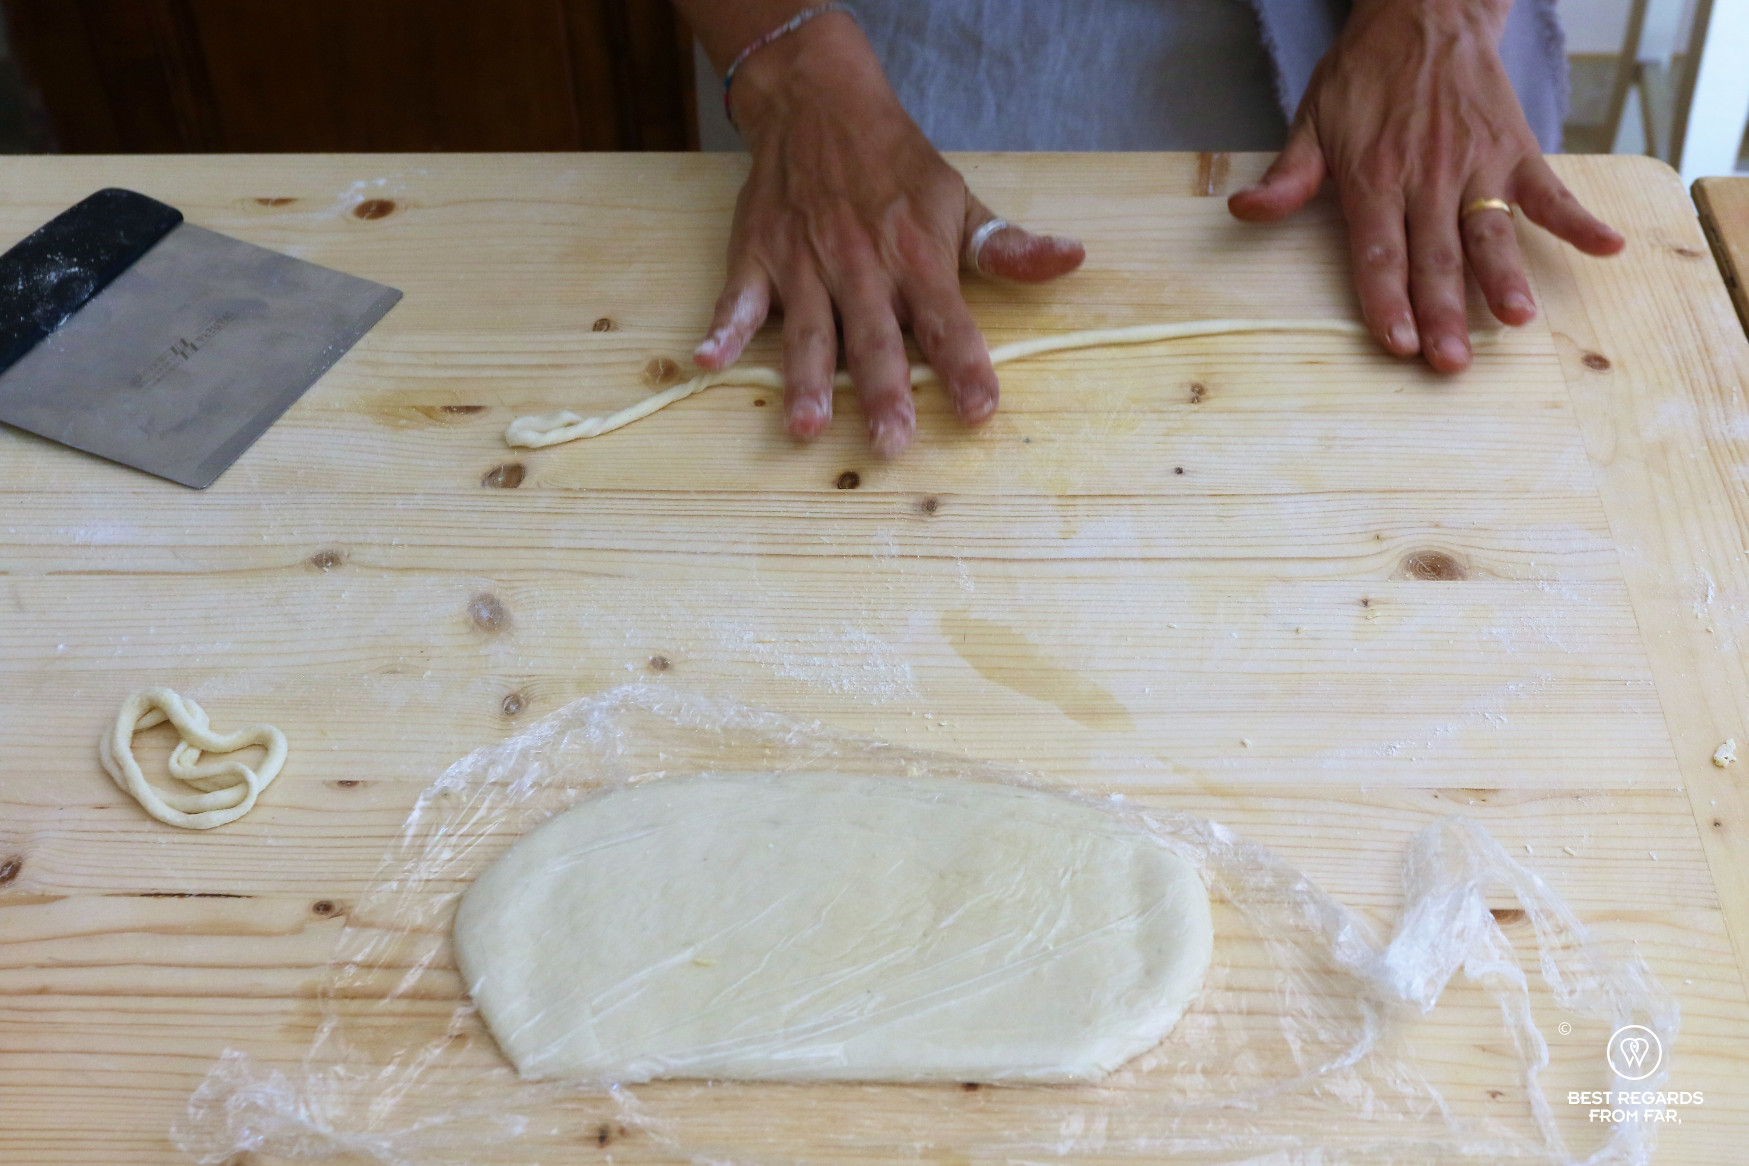 Hand rolling pici pasta, Marta's cooking classes, Siena, Italy